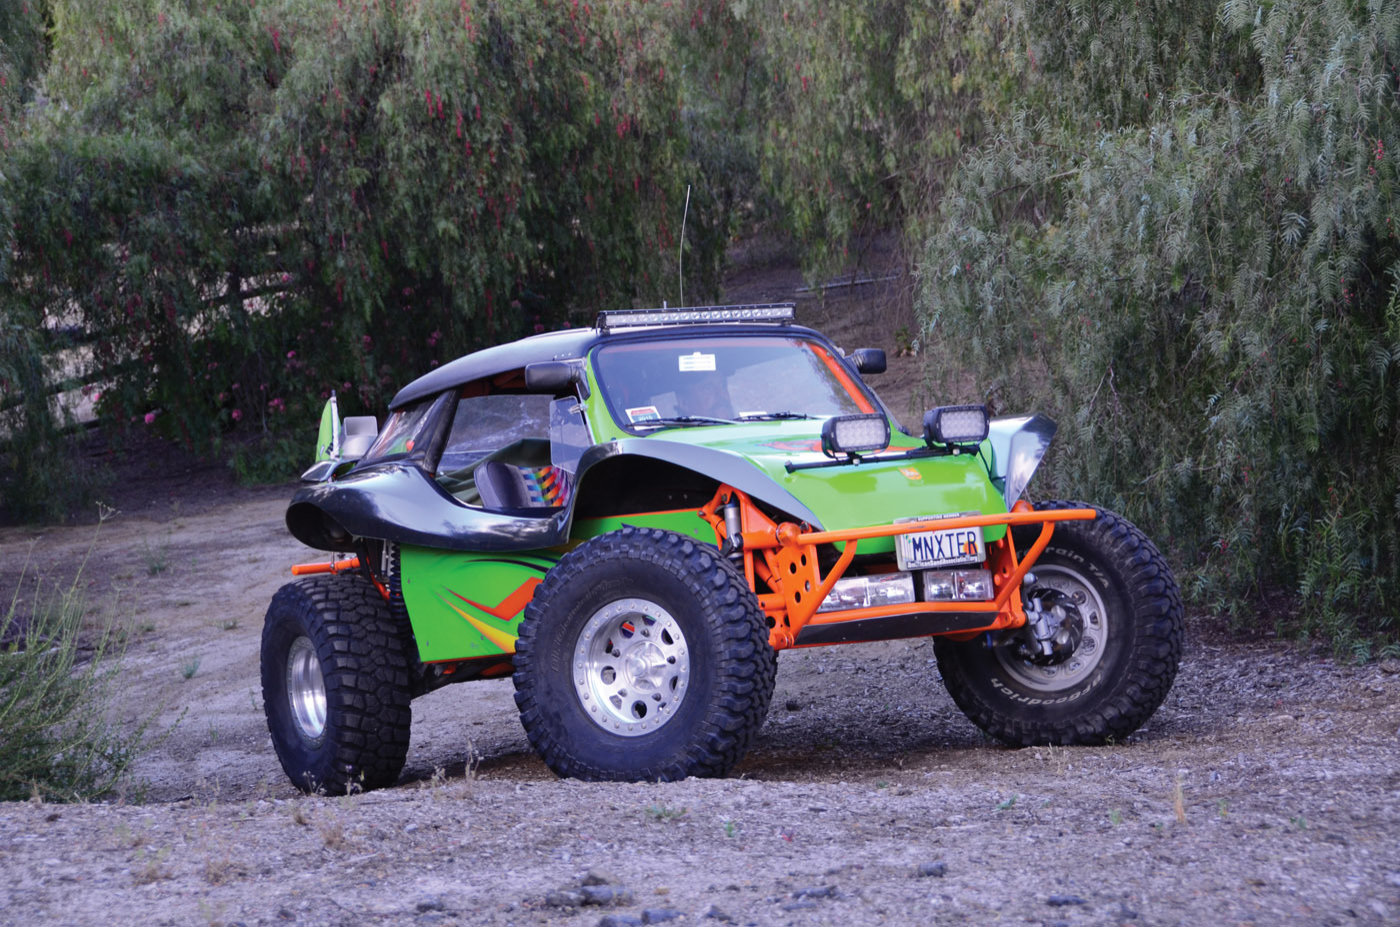 VW-powered Myers Manx DualSport | ReinCarNation Magazine